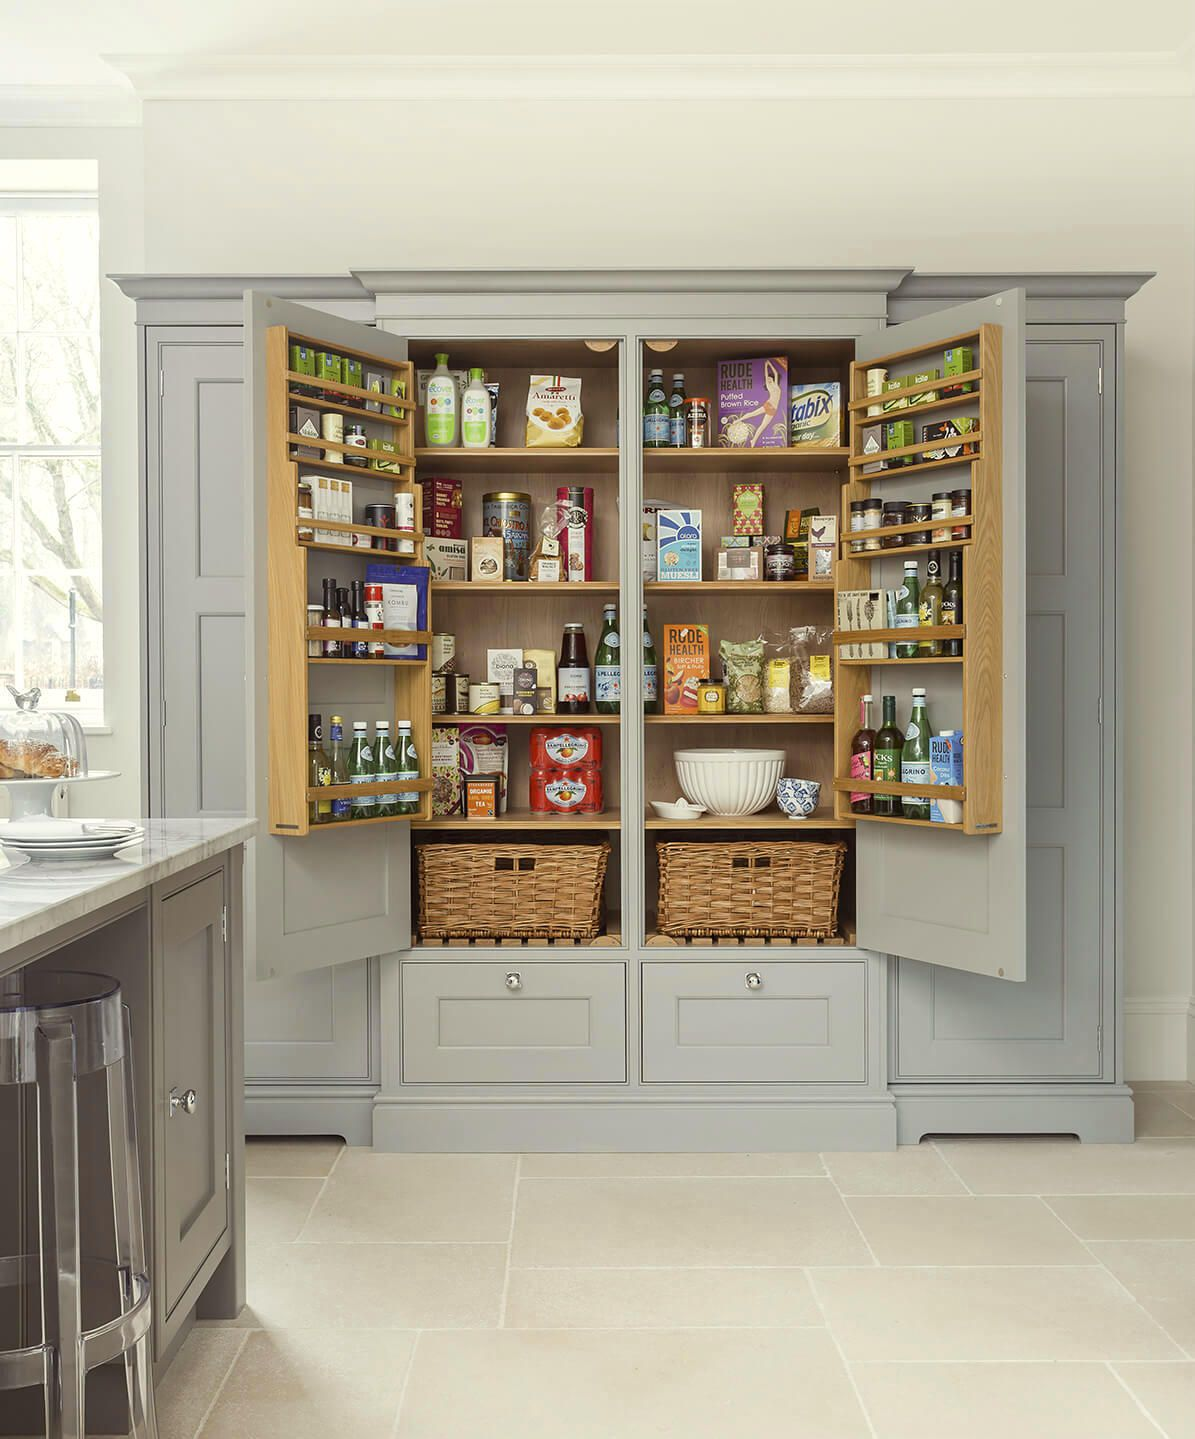 12 Farrow And Ball Kitchen Cabinet Colors For The Perfect English Kitchen Farrow And Ball Kitchen Built In Pantry Kitchen Cabinet Colors